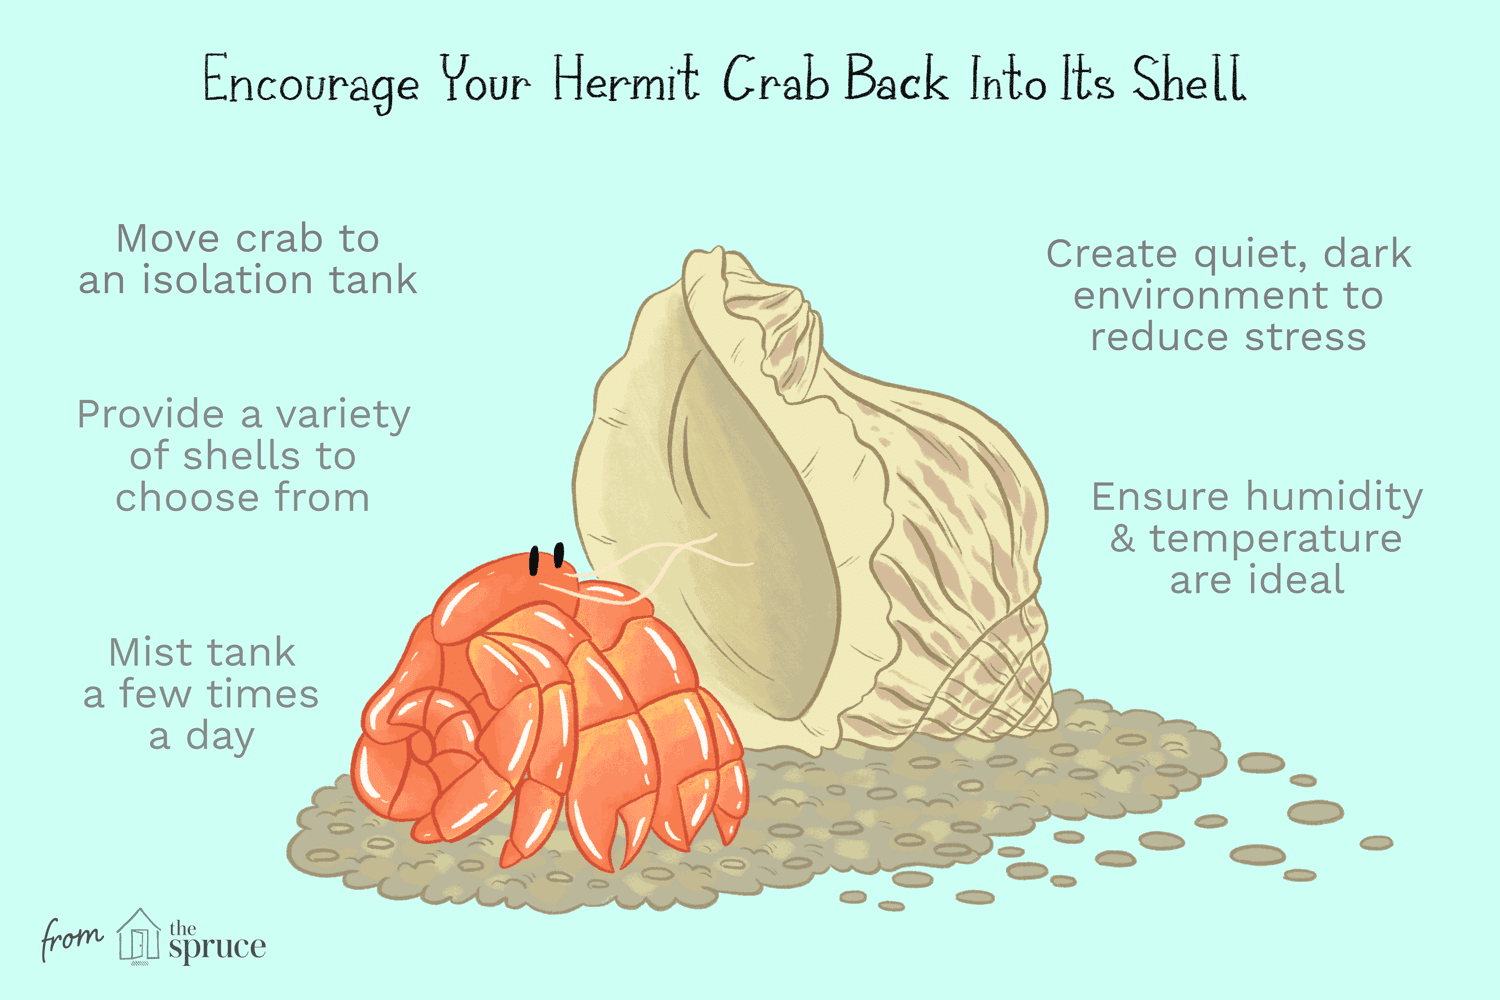 Illustration of ways to encourage your hermit crab back into its shell